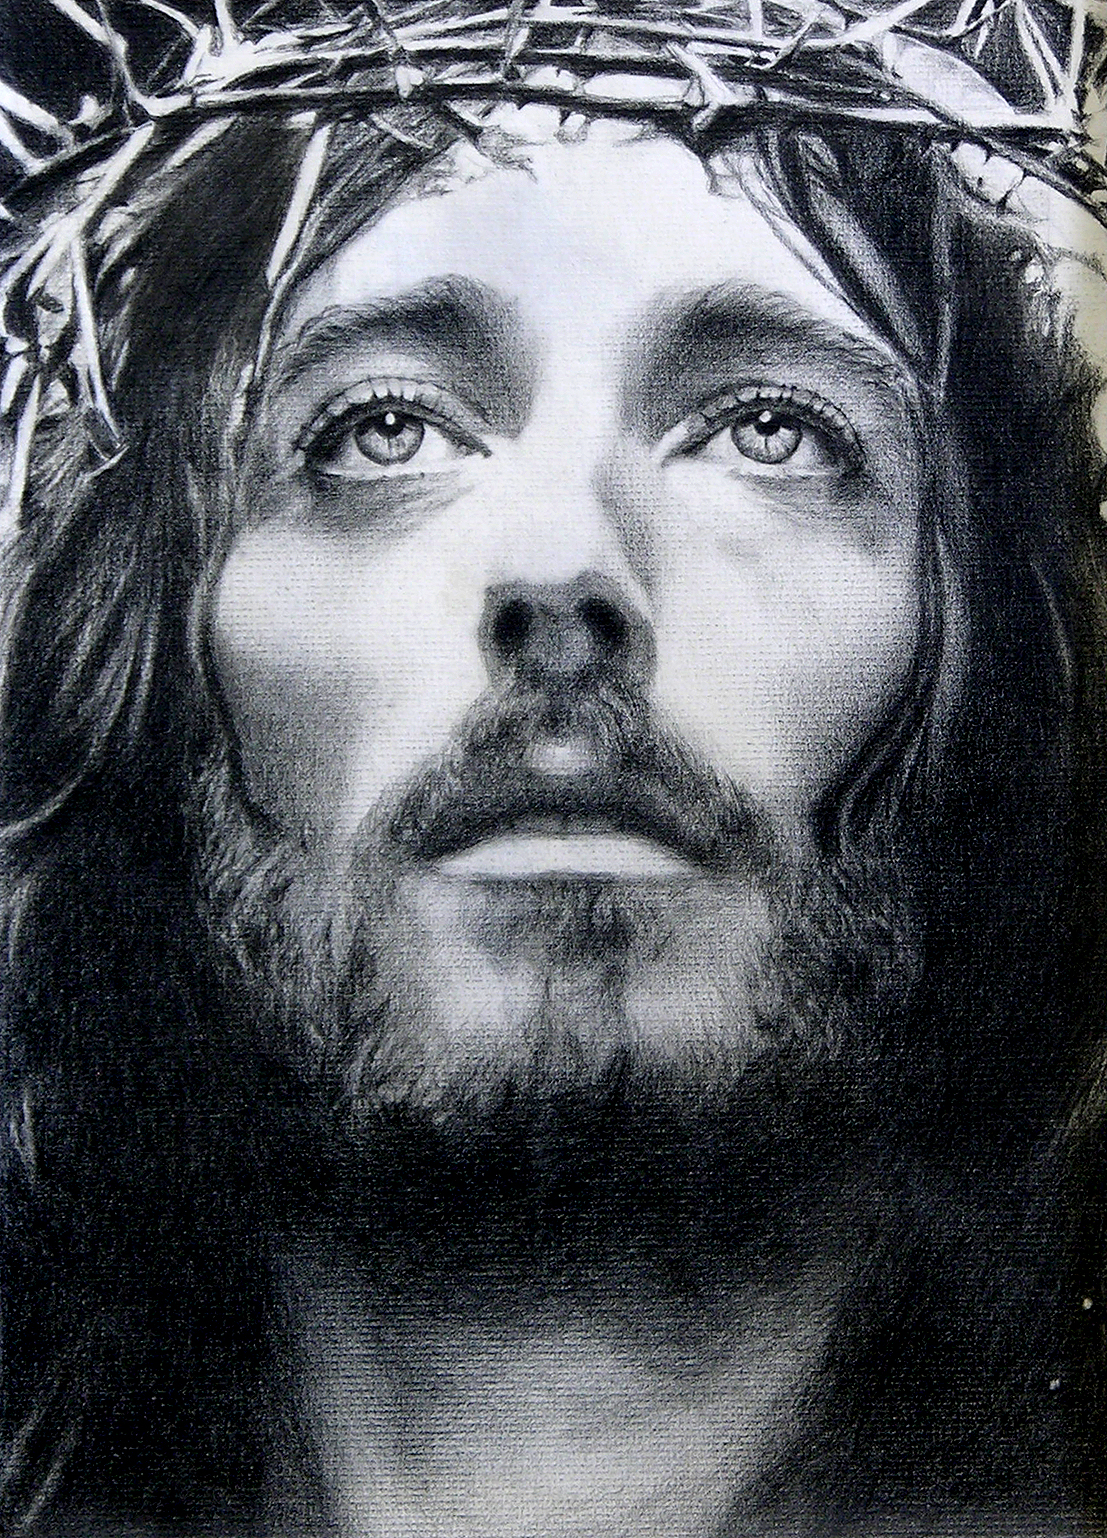 Jesus of Nazareth by noeling